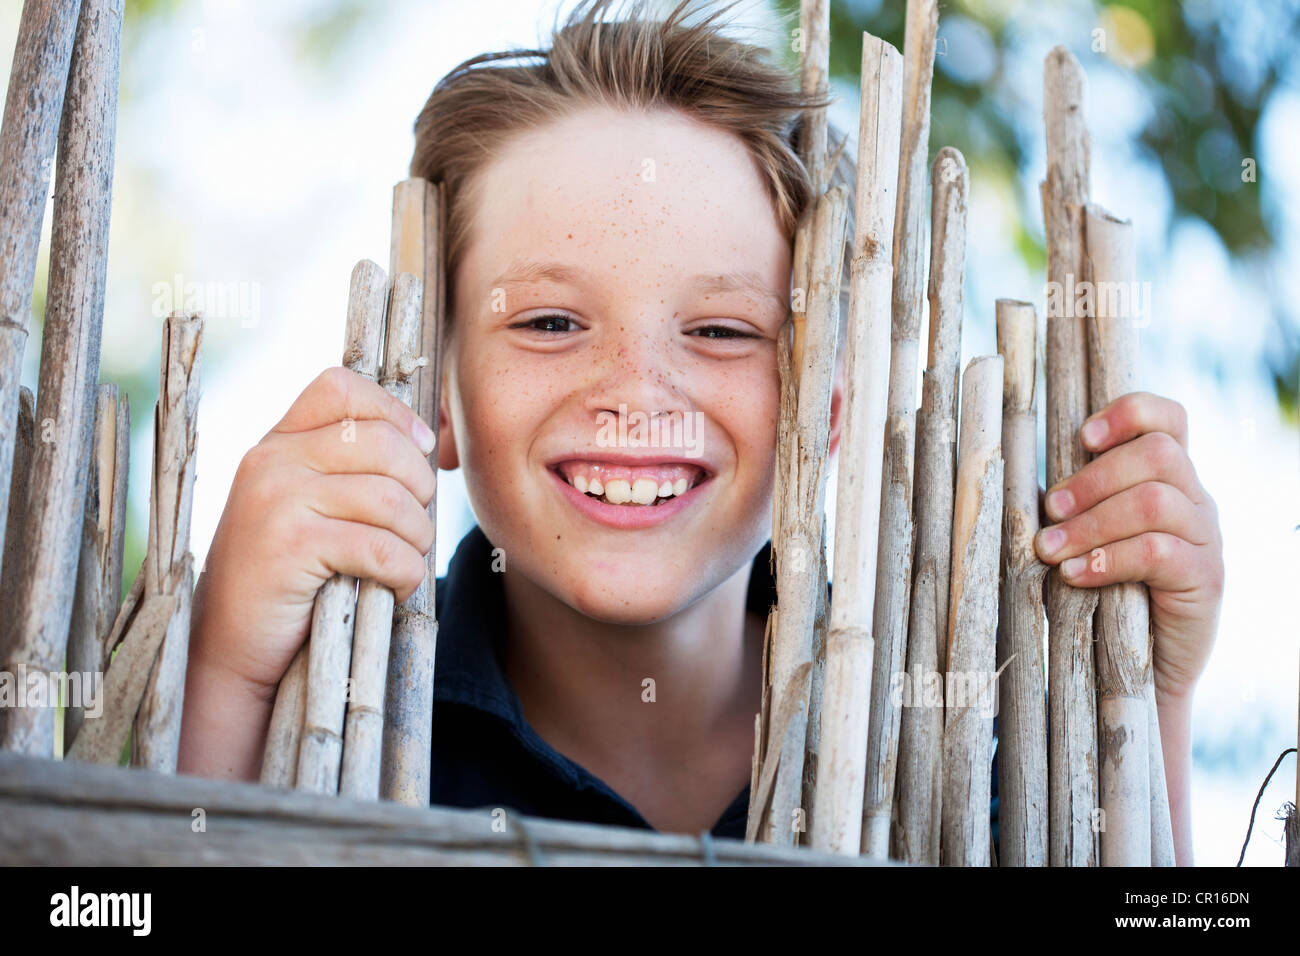 Close up of boy smiling behind fence - Stock Image